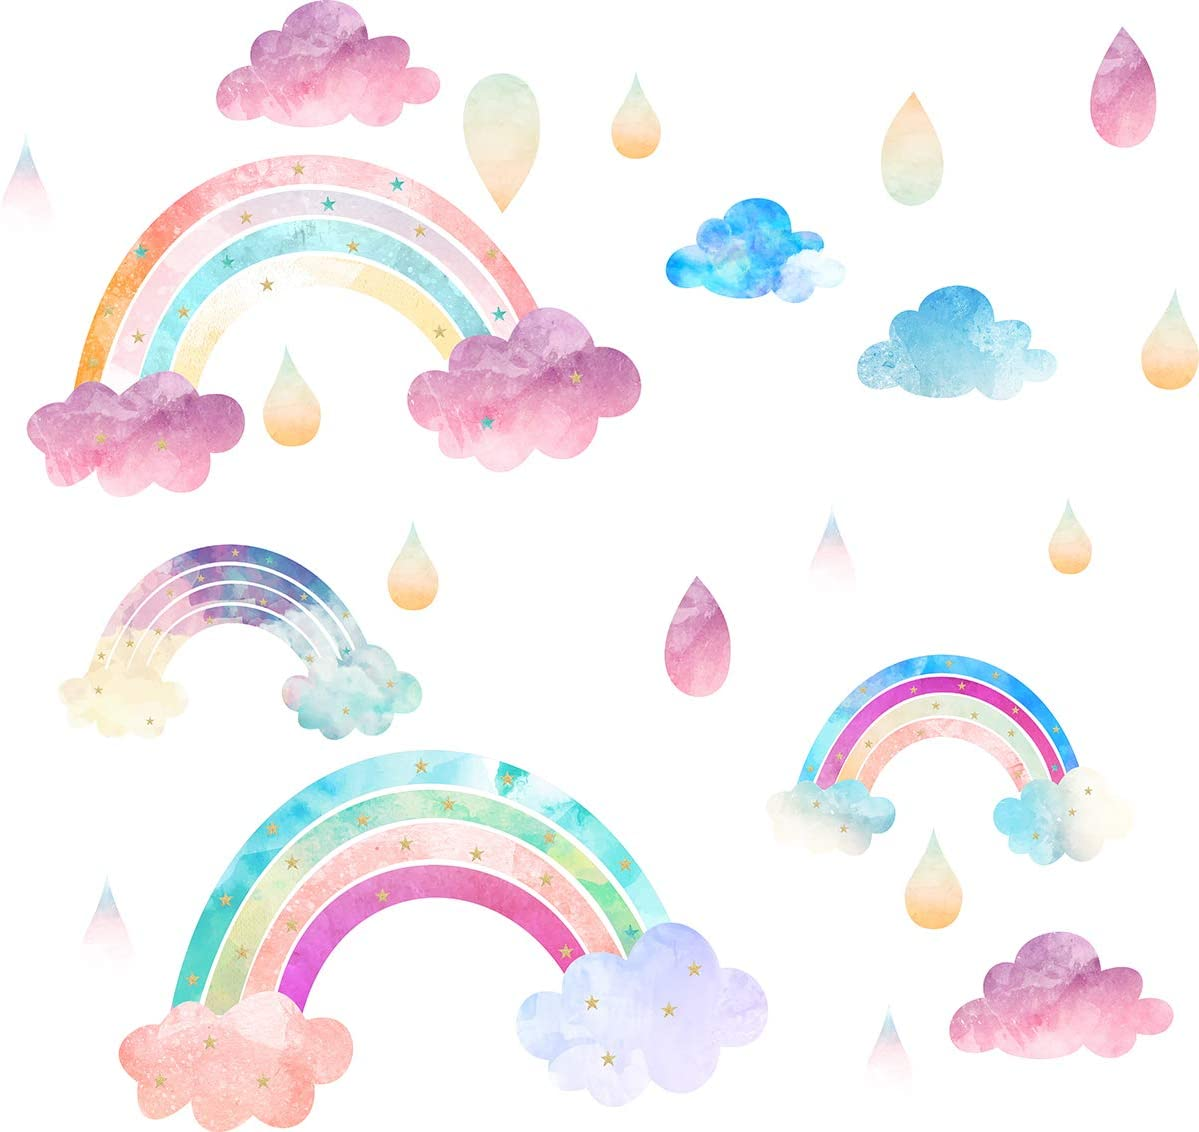 Easma Rainbow Wall Decals Cloud Wall Decals Watercolor Raindrop Wall Stickers Peel&Stick Wall Sticker Kids Decals for Walls